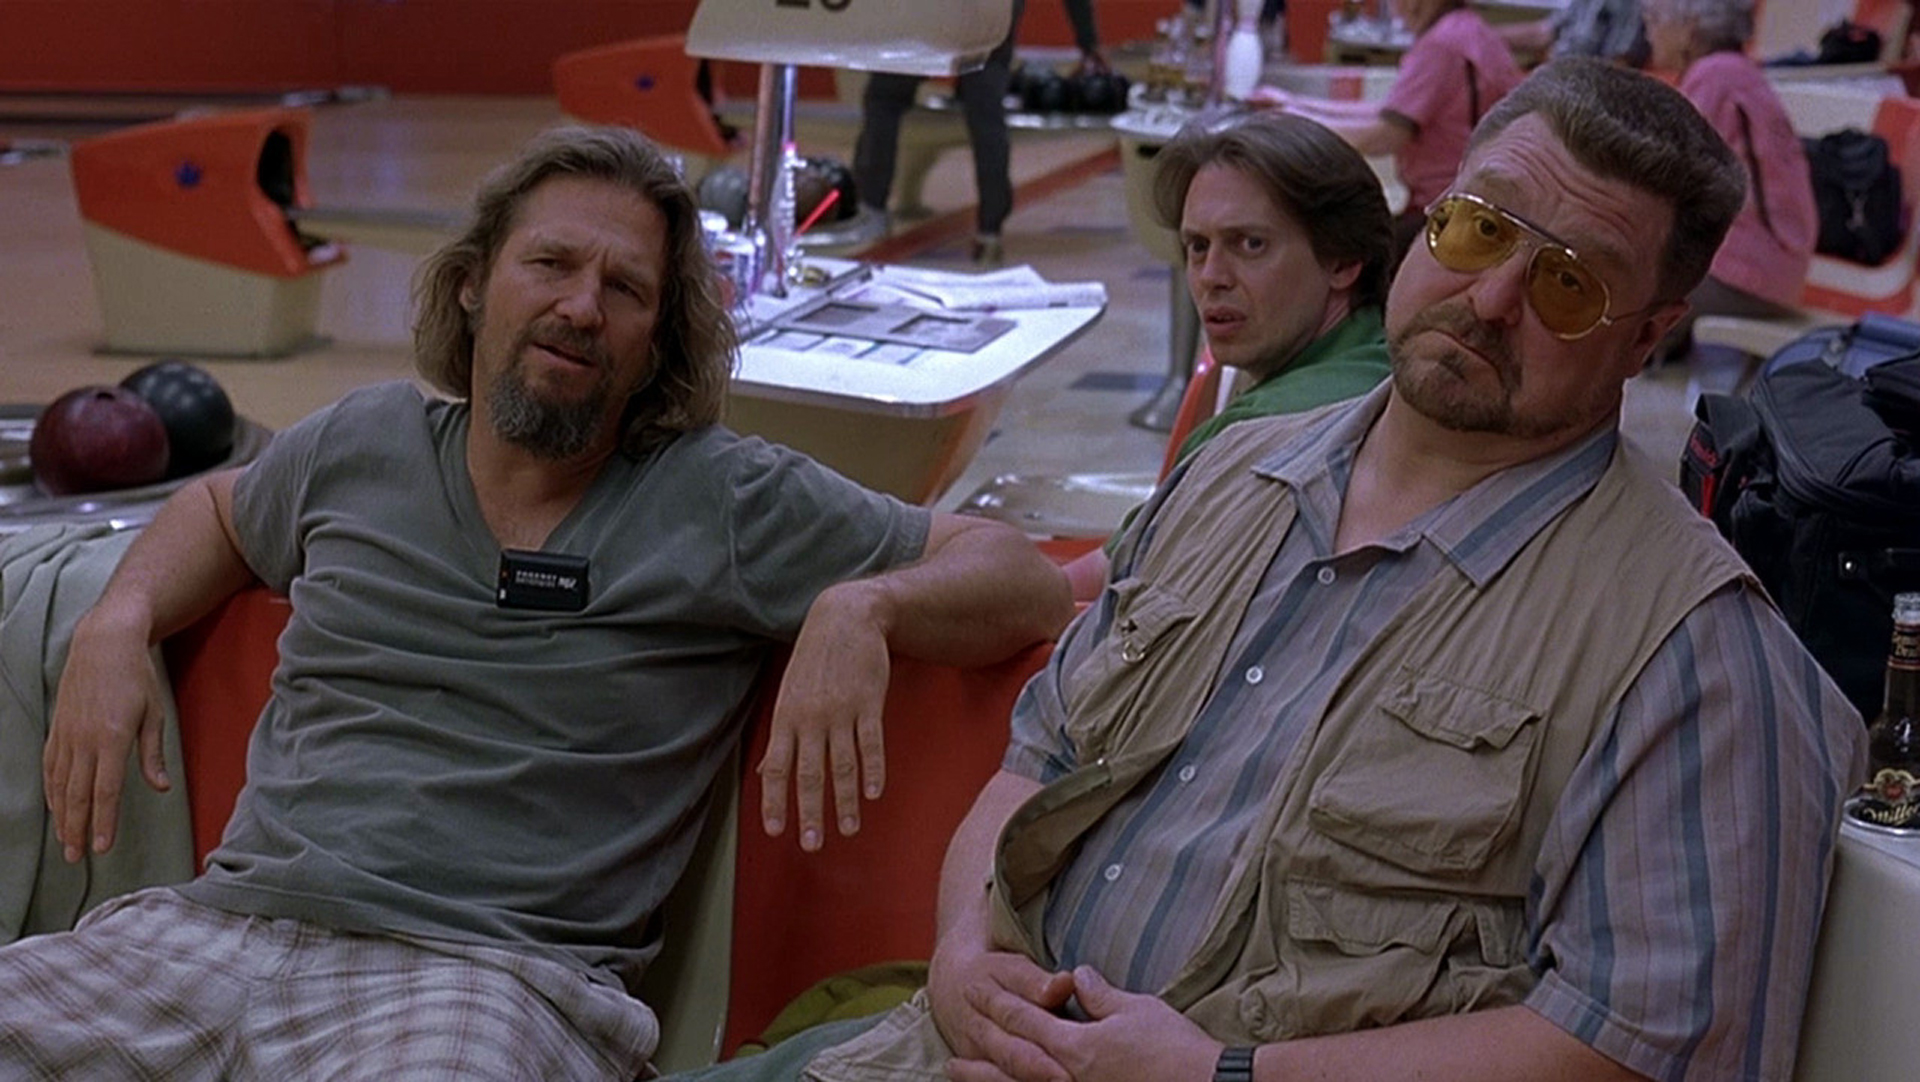 """The film's central trio, at the now-demolished Hollywood Star Lanes. Screenshot via <a href=""""http://drafthouse.com/movies/biglebowskiquotealong/austin"""">Drafthouse</a>"""